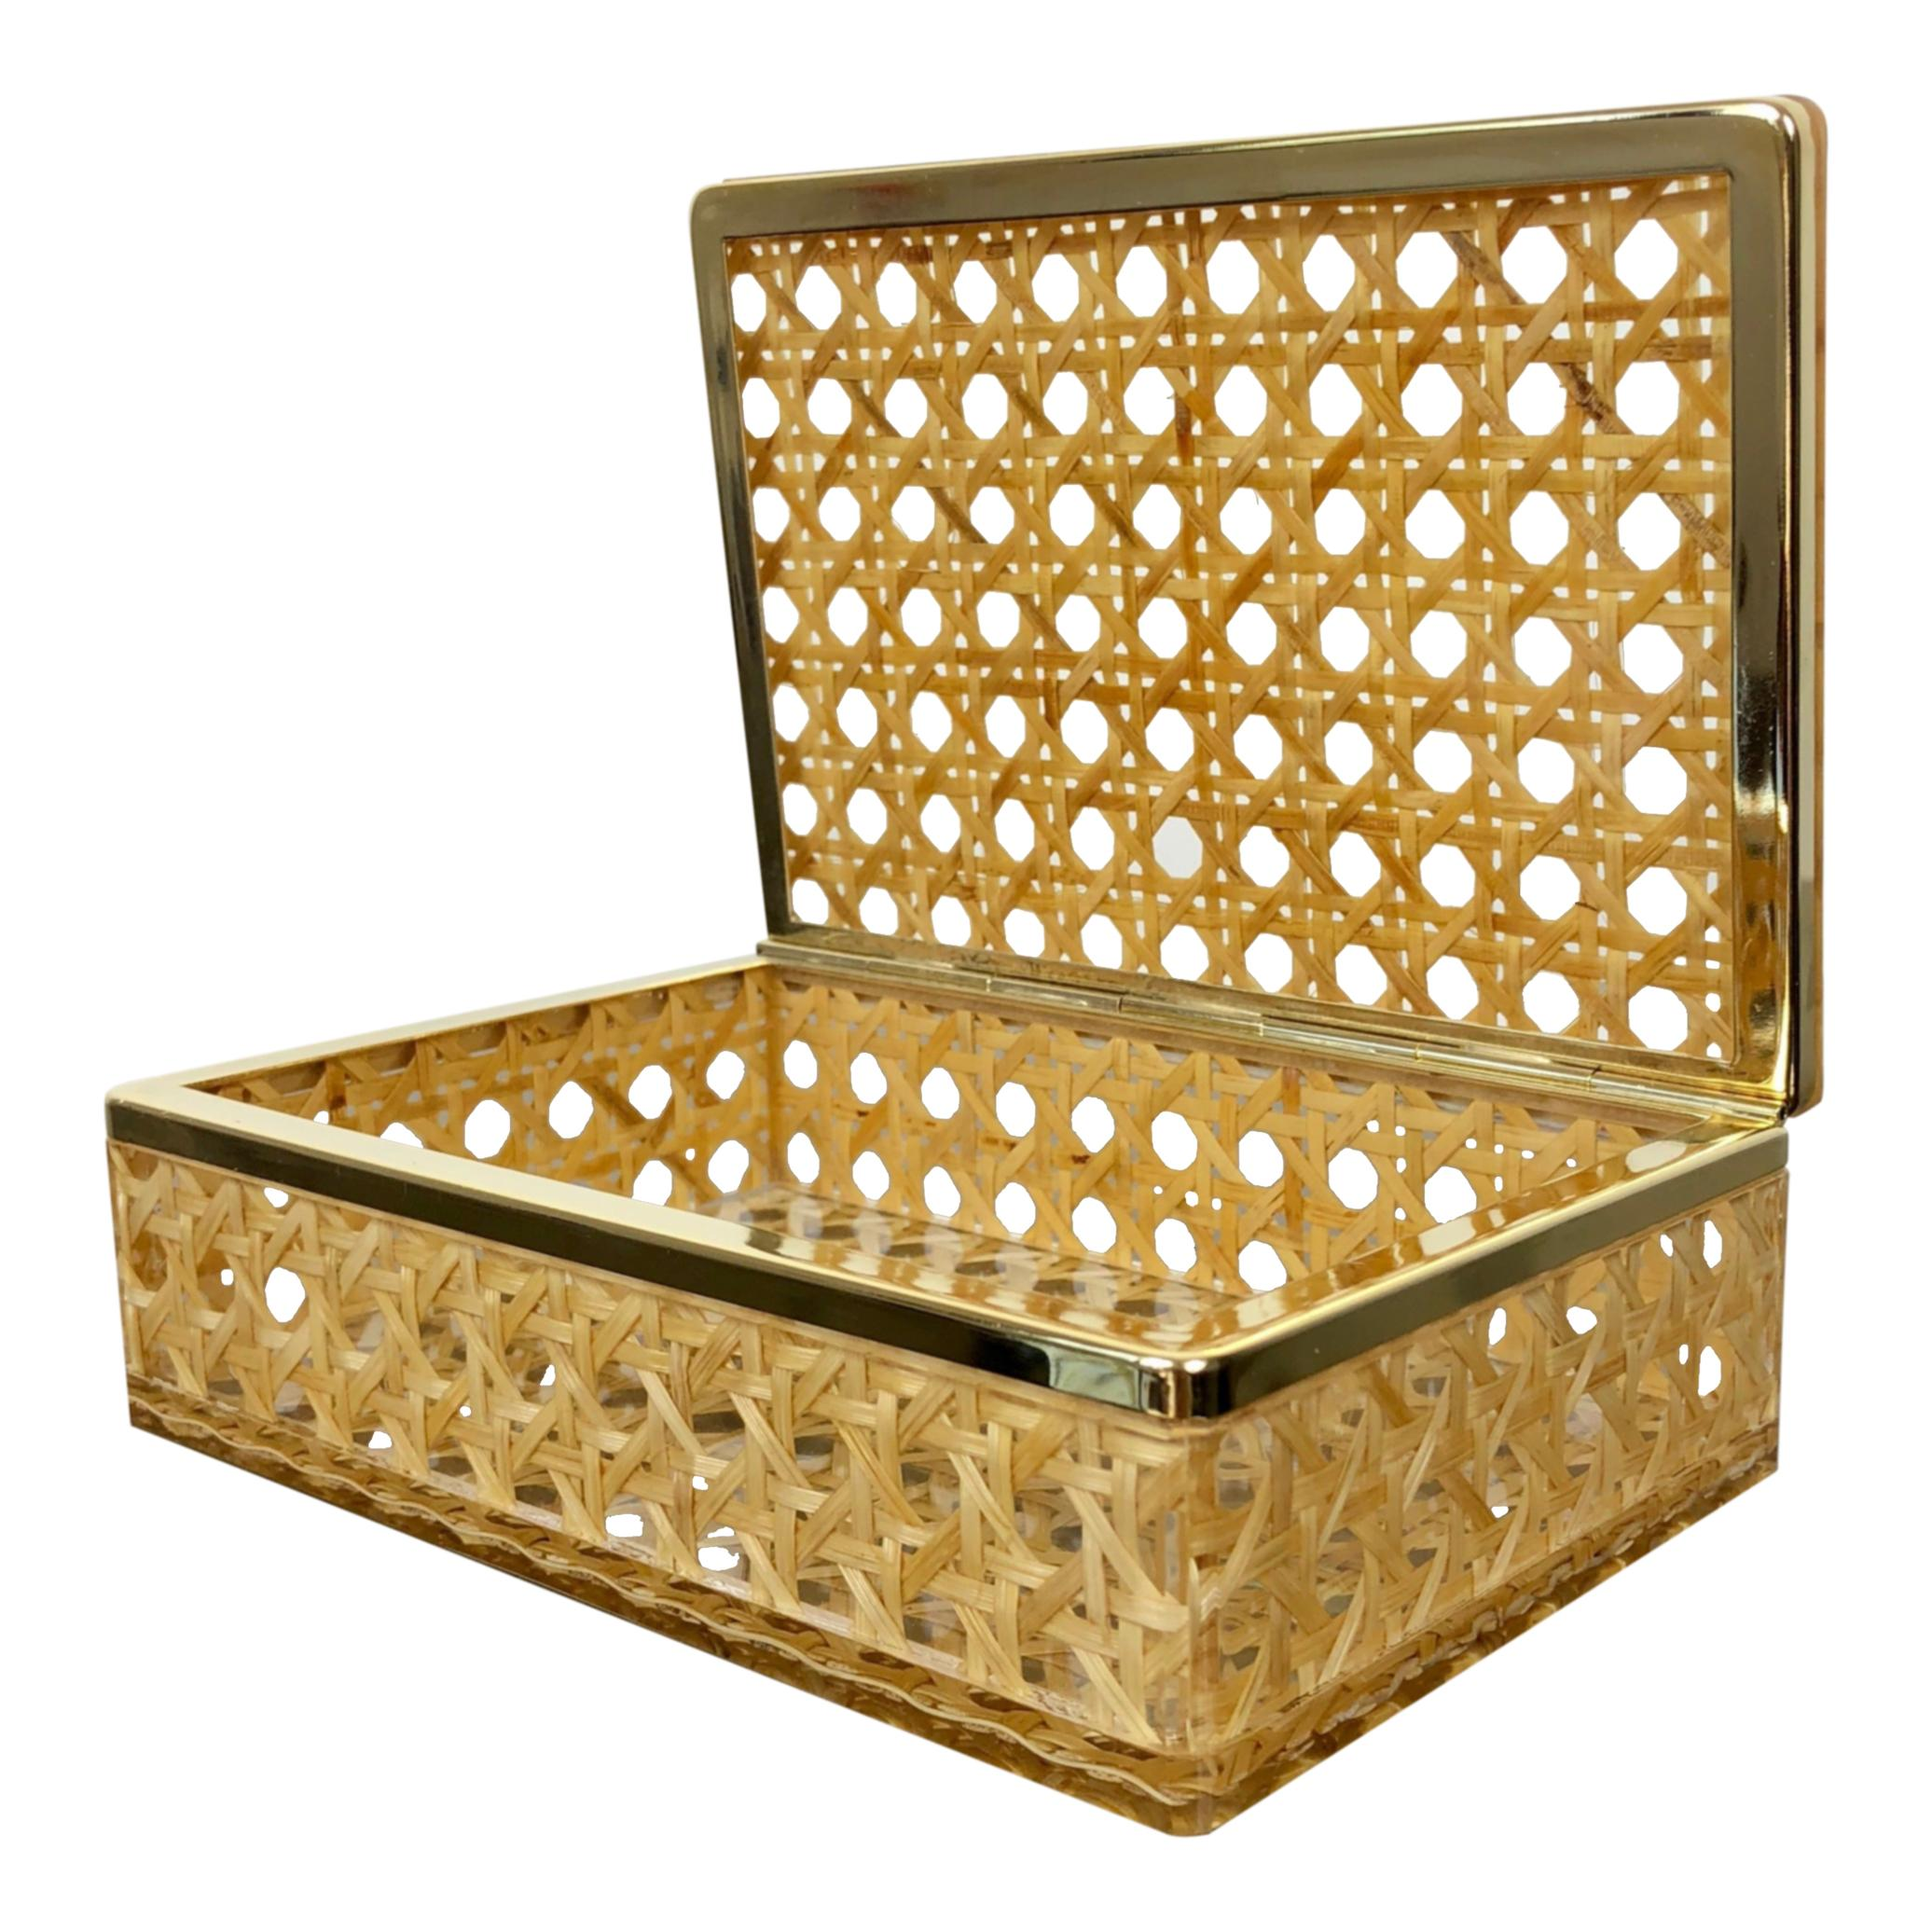 Box in Lucite, Wicker Rattan and Brass in Christian Dior Style, Italy